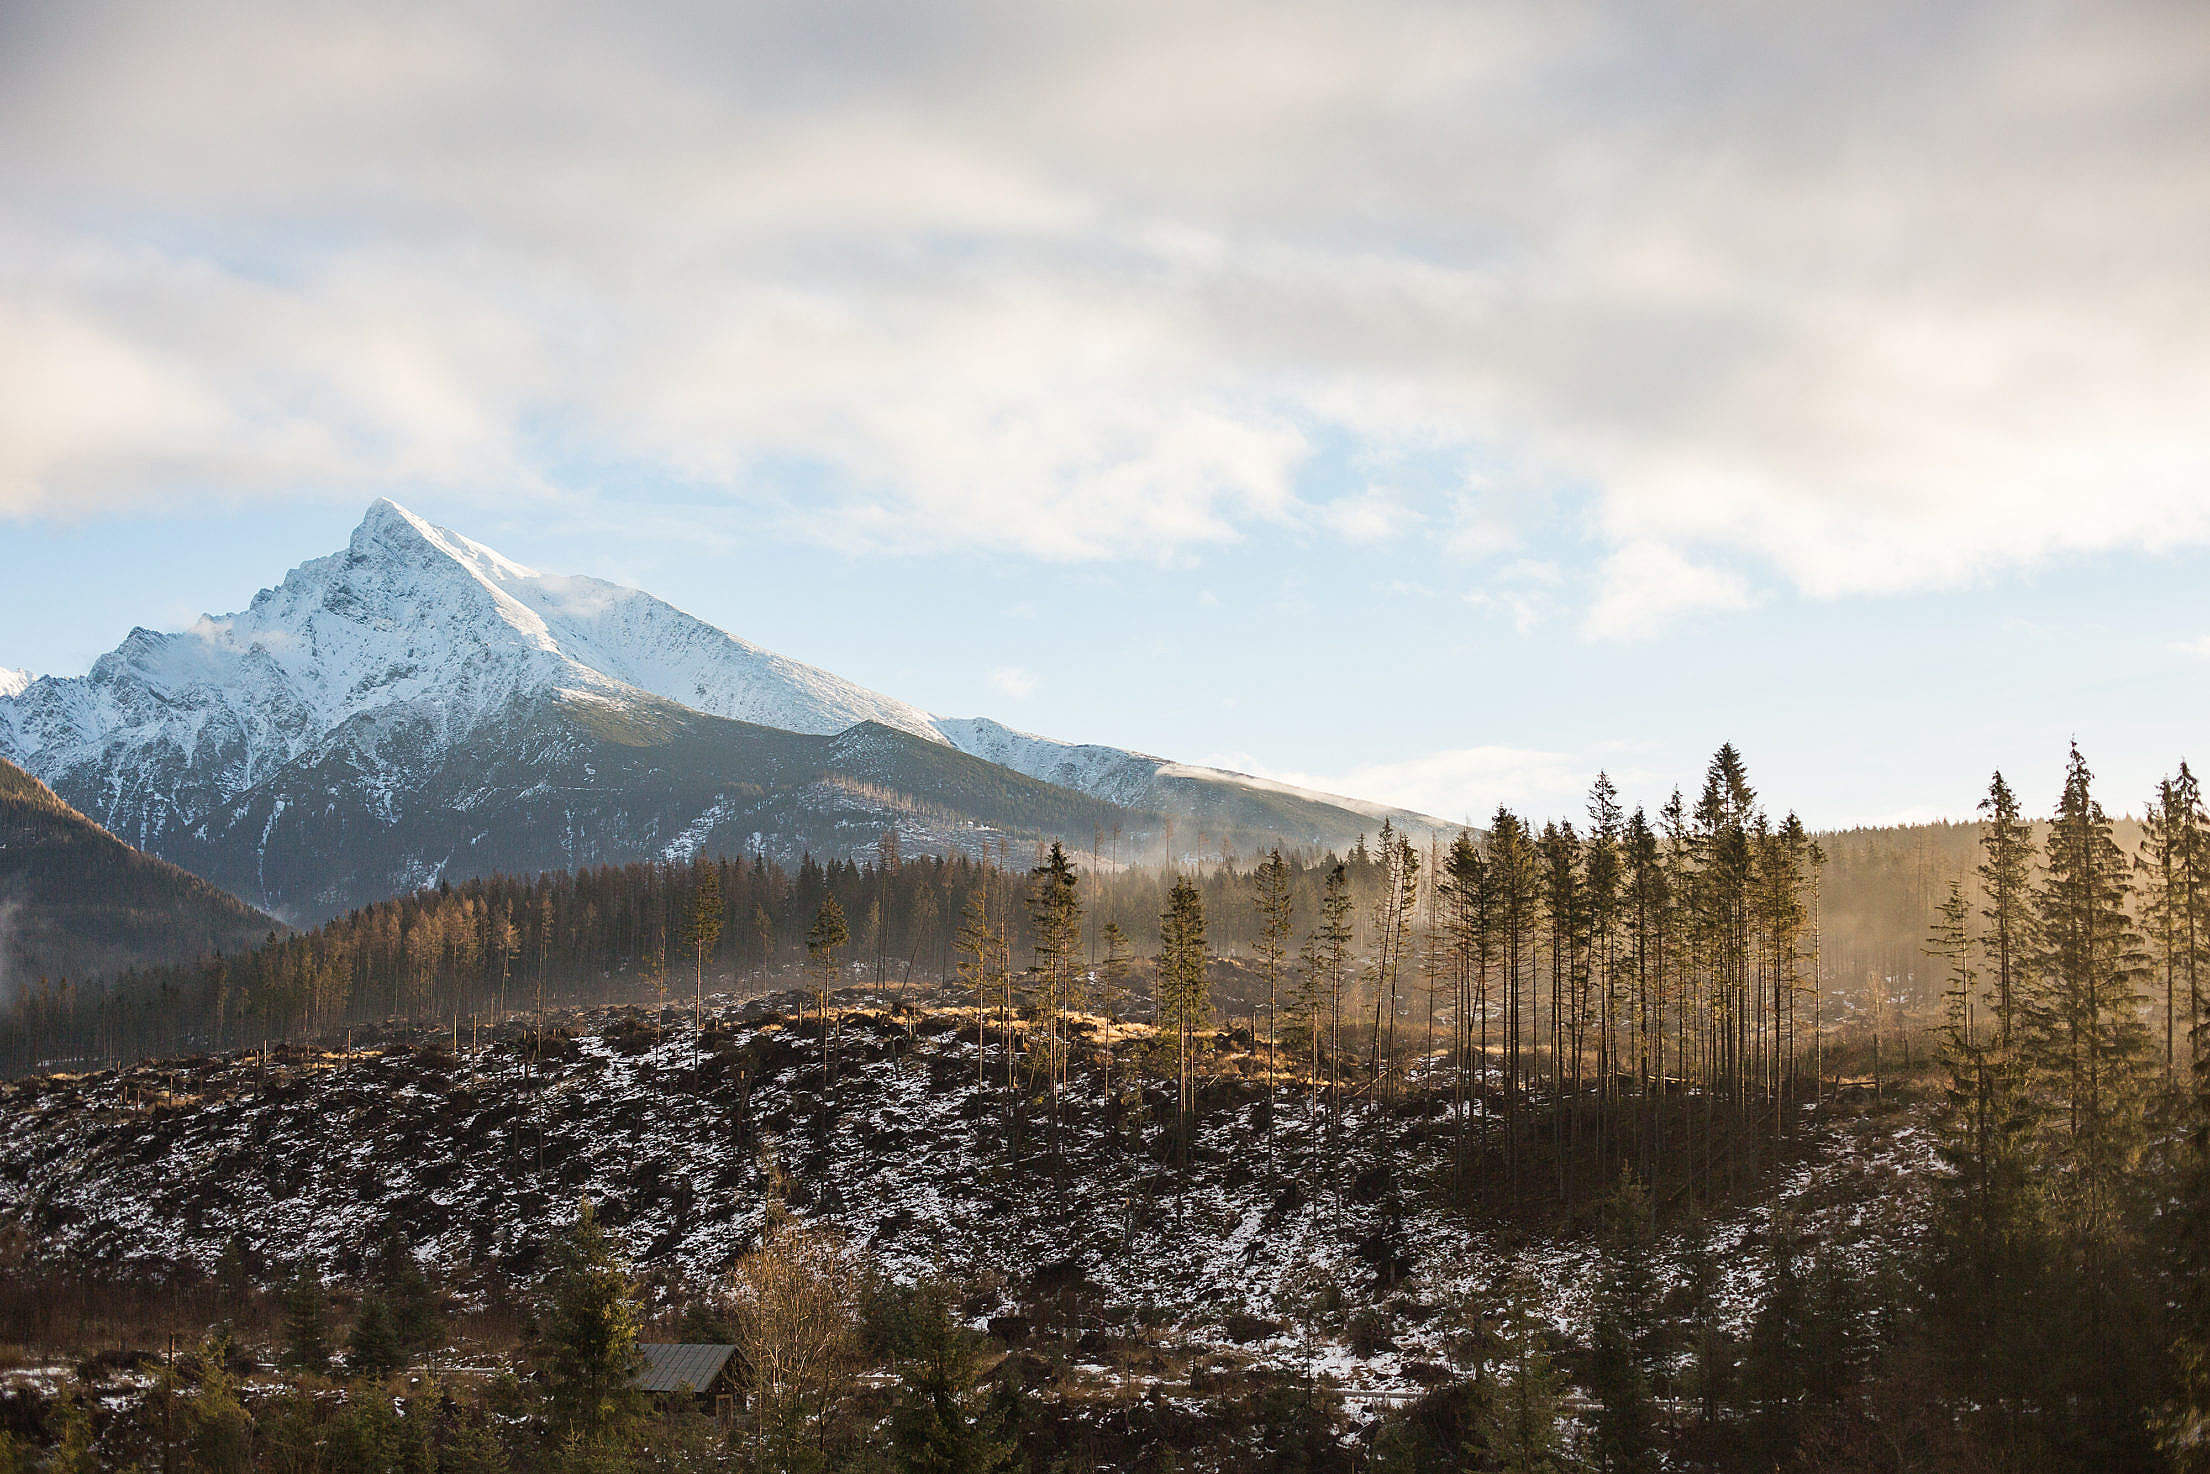 Big Mountain and Morning Woods Scenery Free Stock Photo